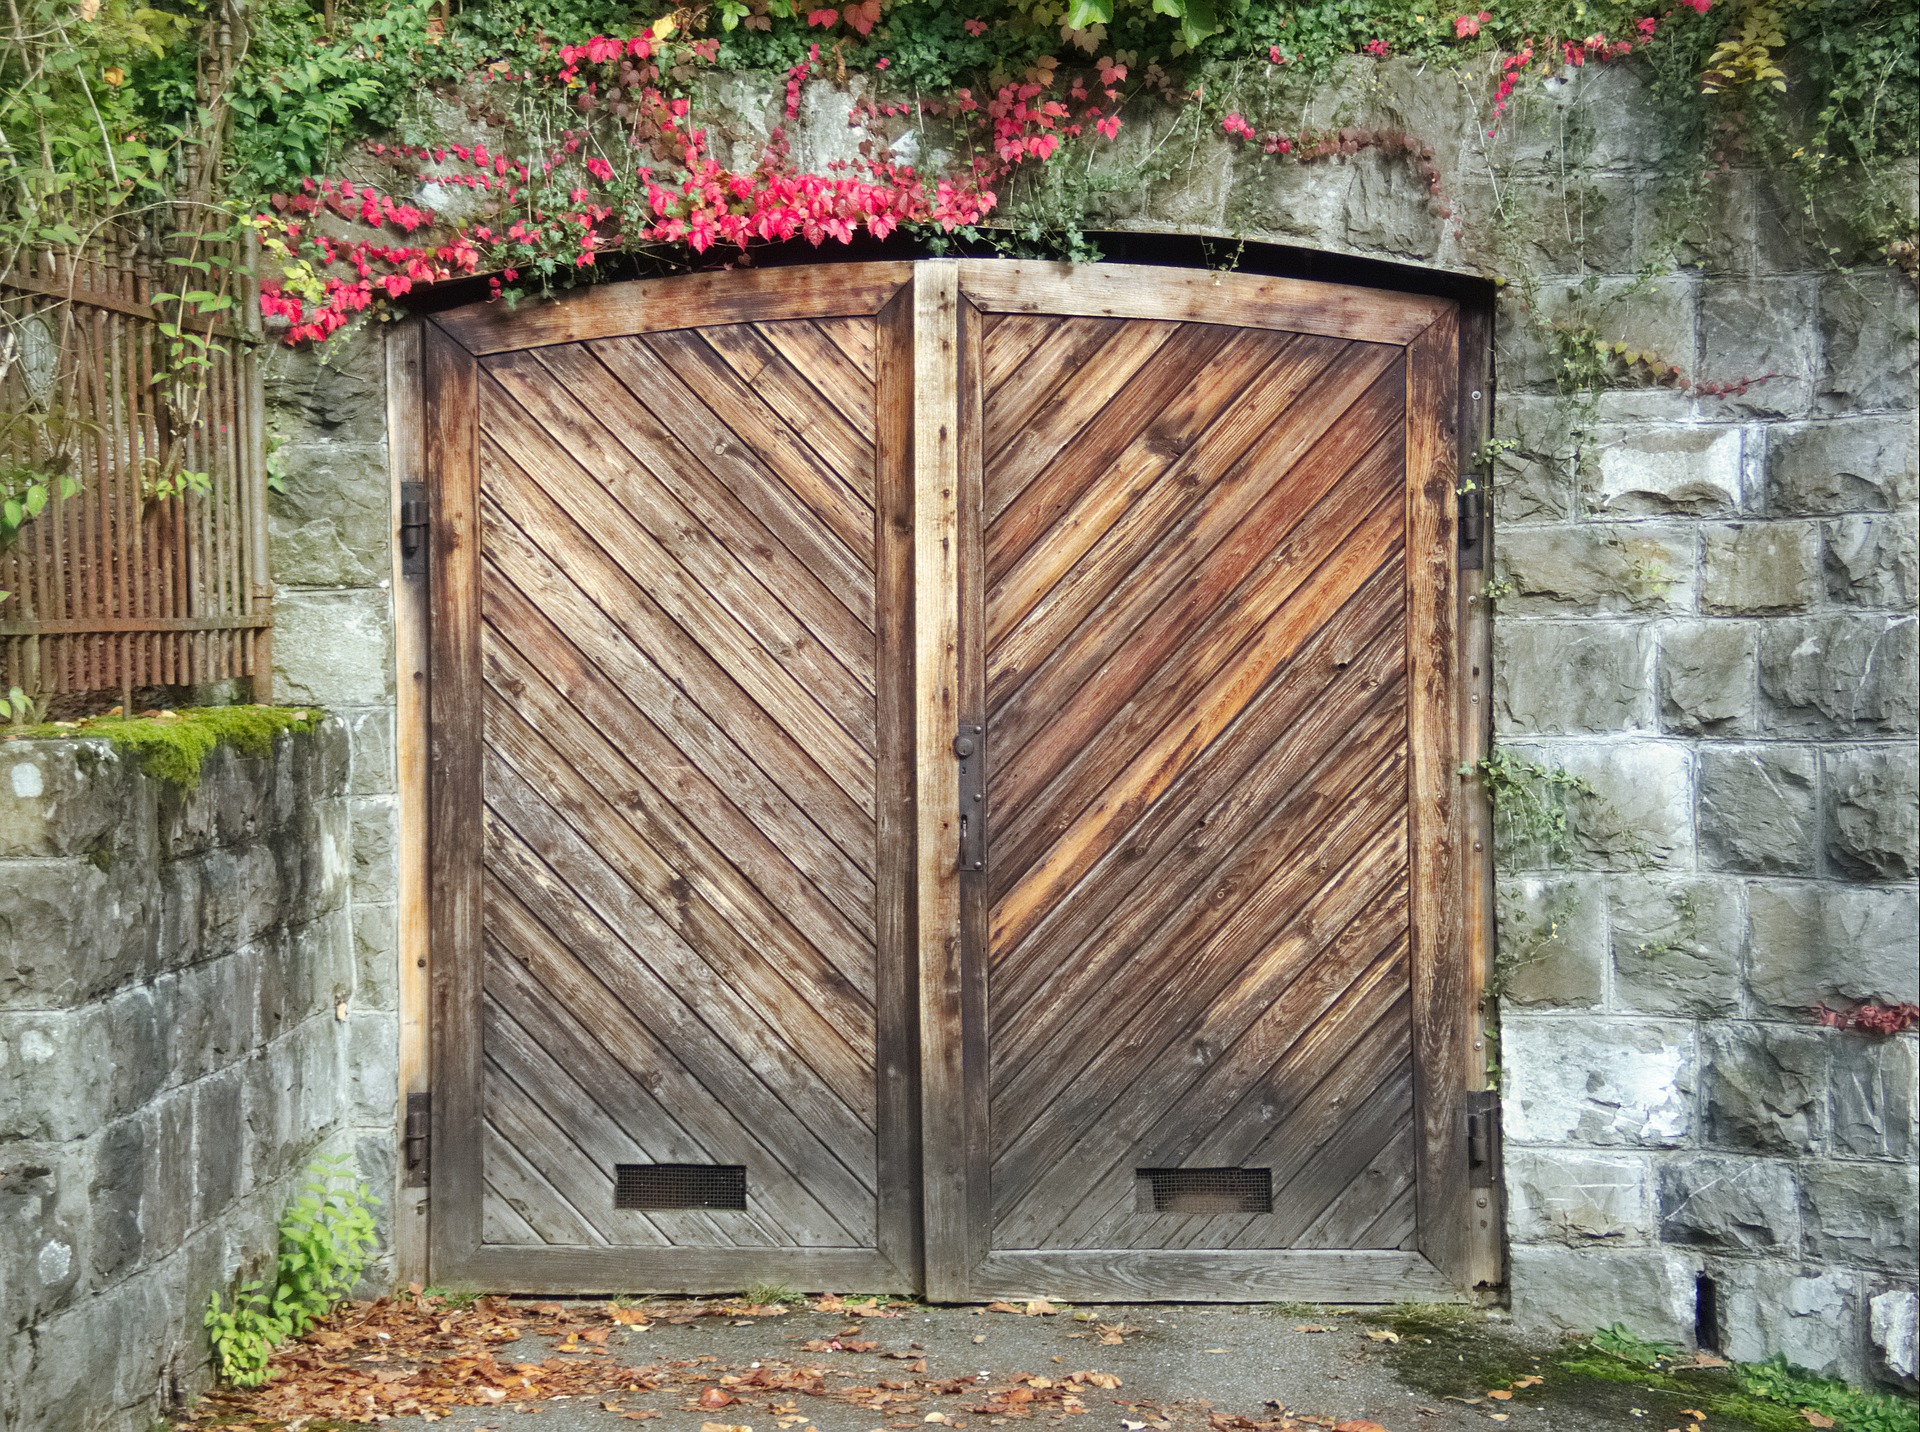 Wooden Garage Doors in Santa Monica California